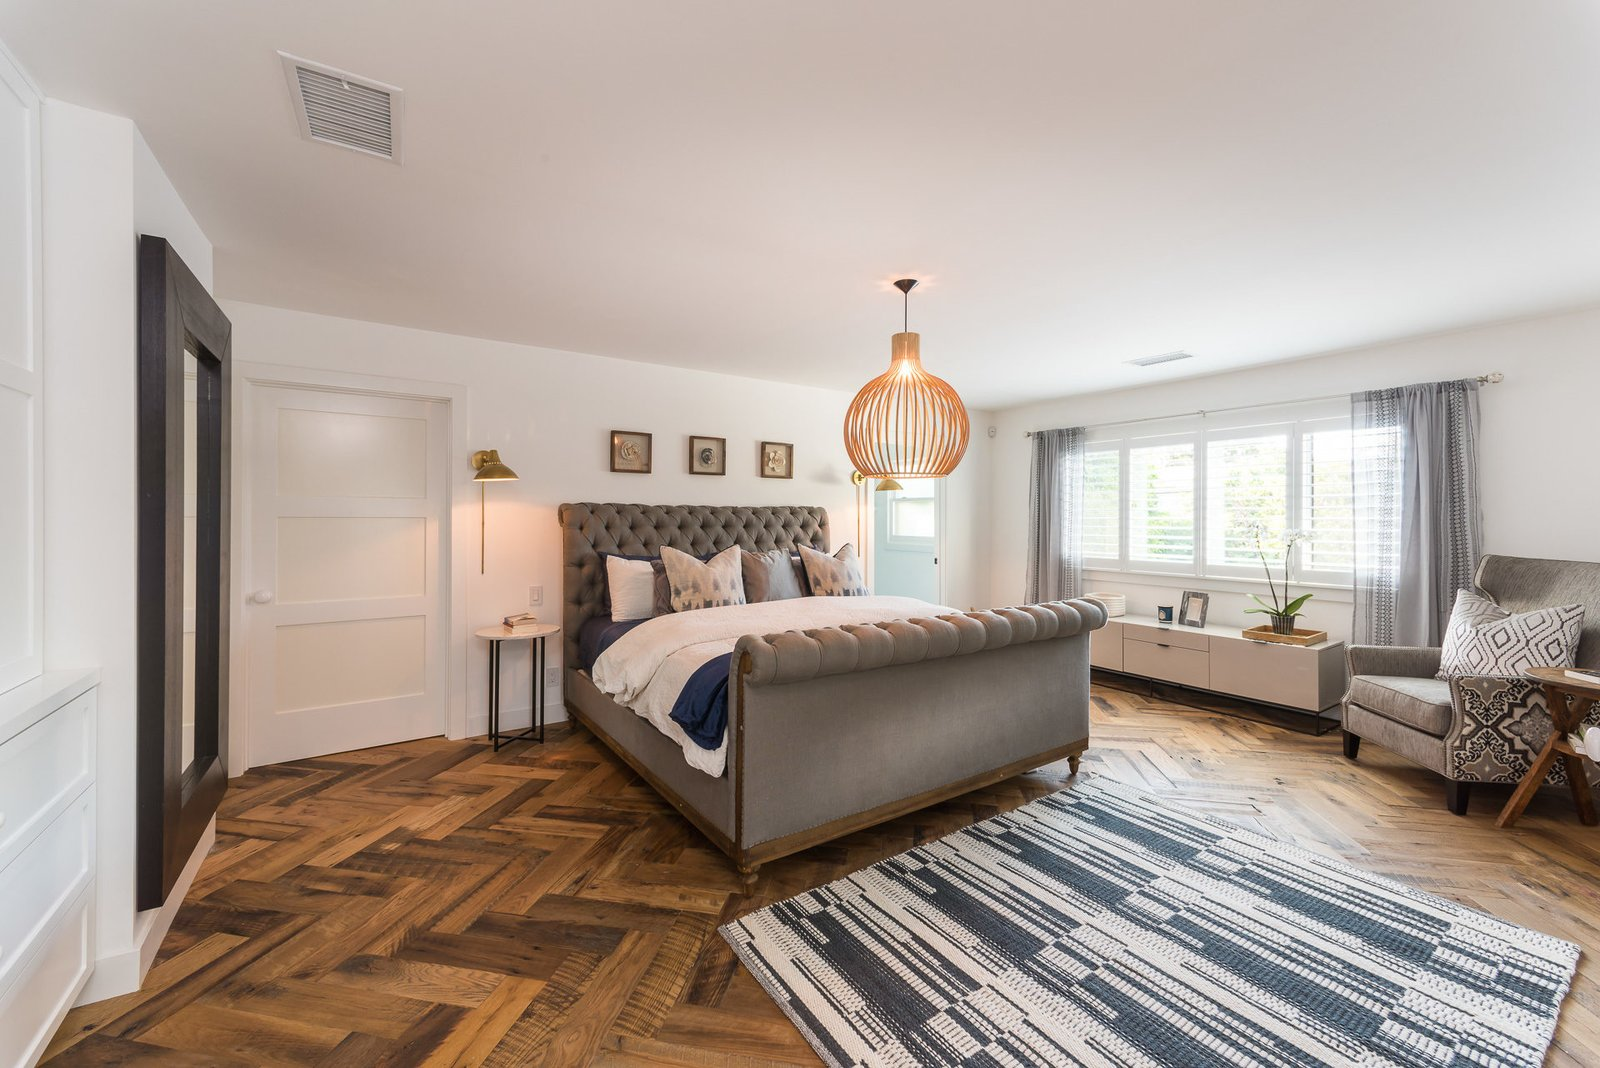 Tagged: Bedroom, Chair, Bed, and Medium Hardwood Floor.  Mid-Century Meets Boho Chic by Zillow